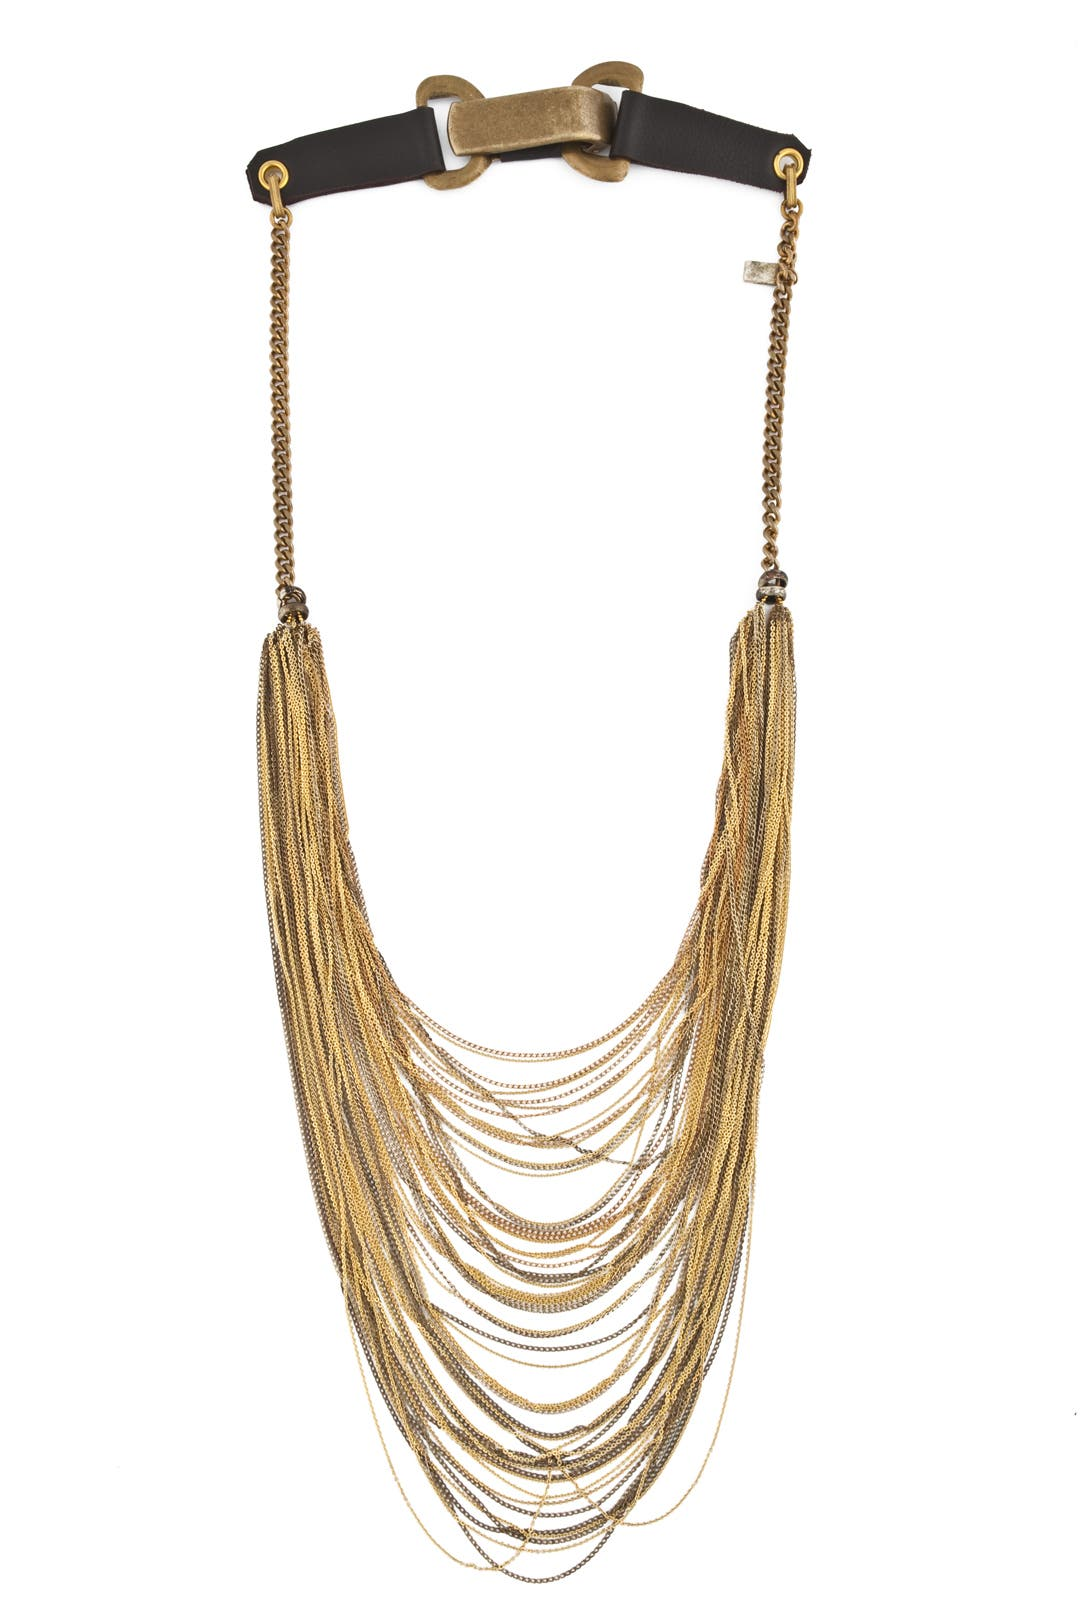 Saddle Back Chain Necklace by Rodrigo Otazu